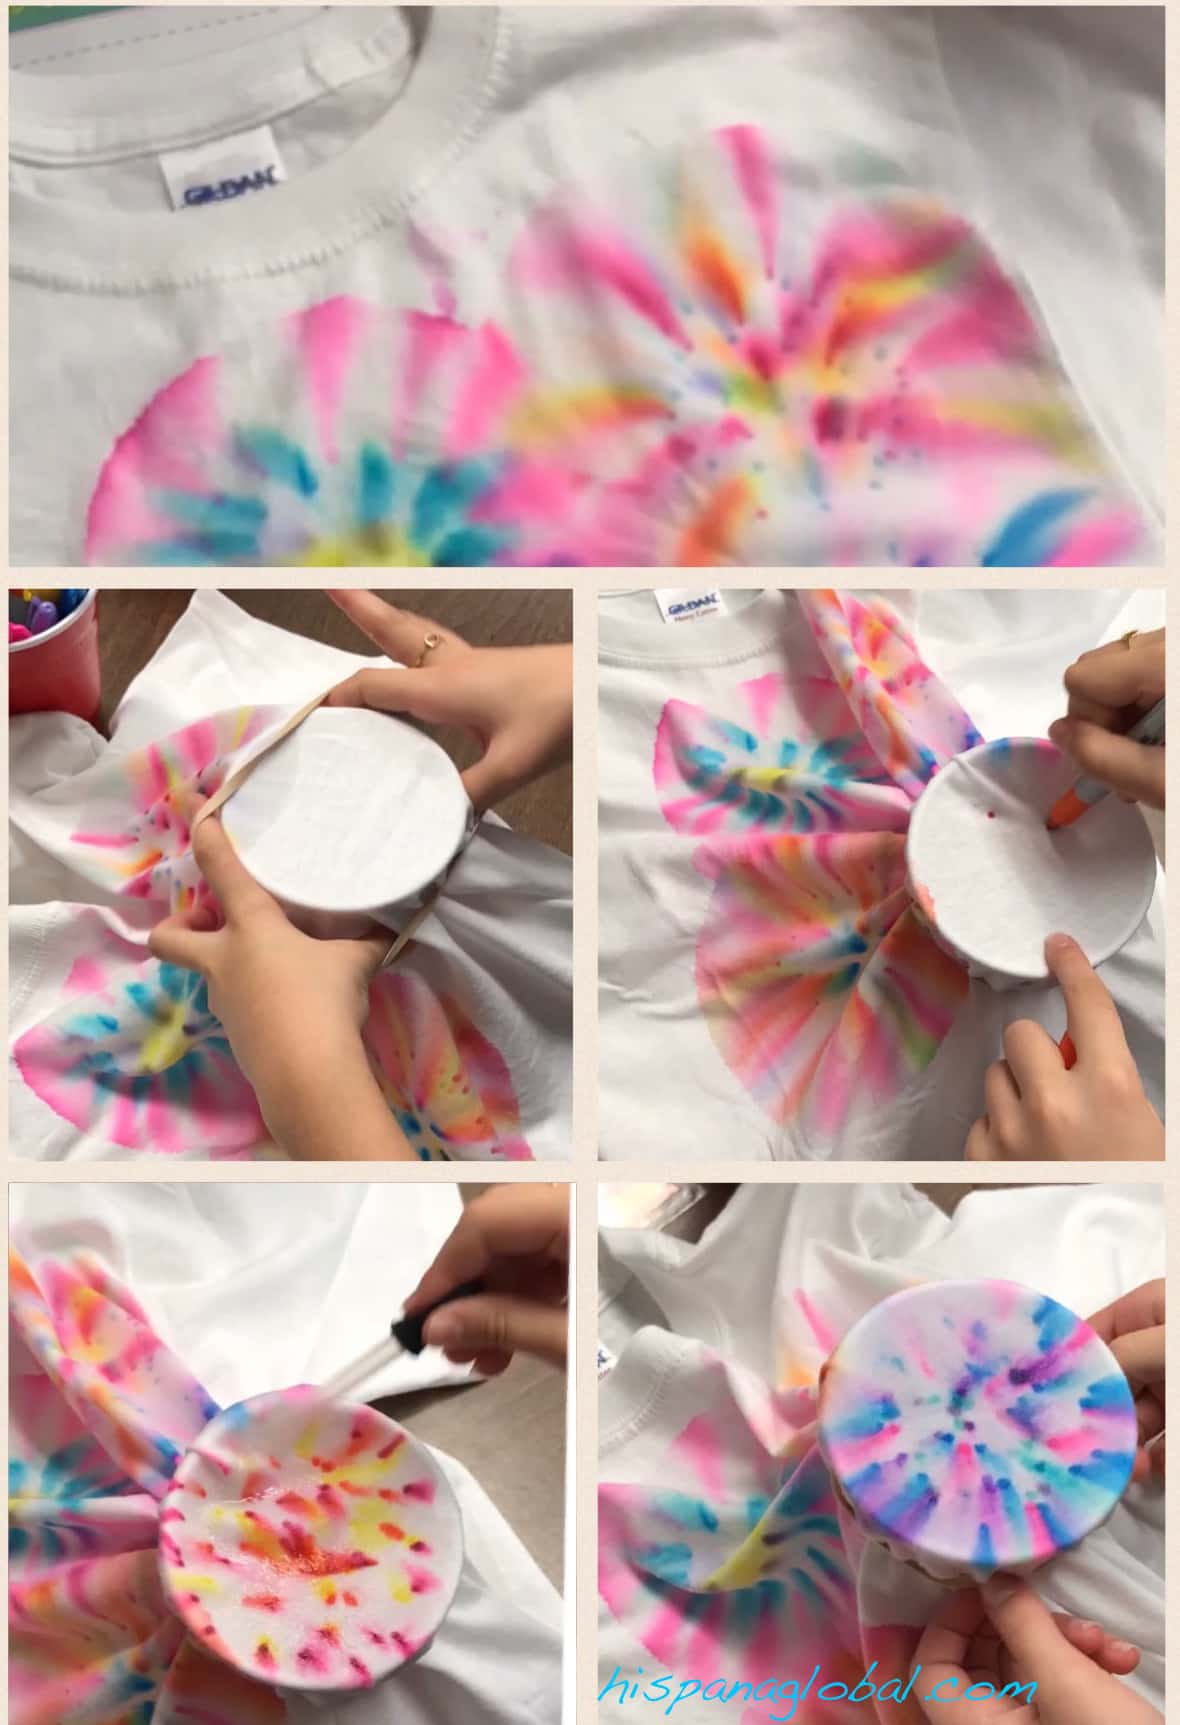 Steps for how to make tie-dye shirts with markers and rubbing alcohol.